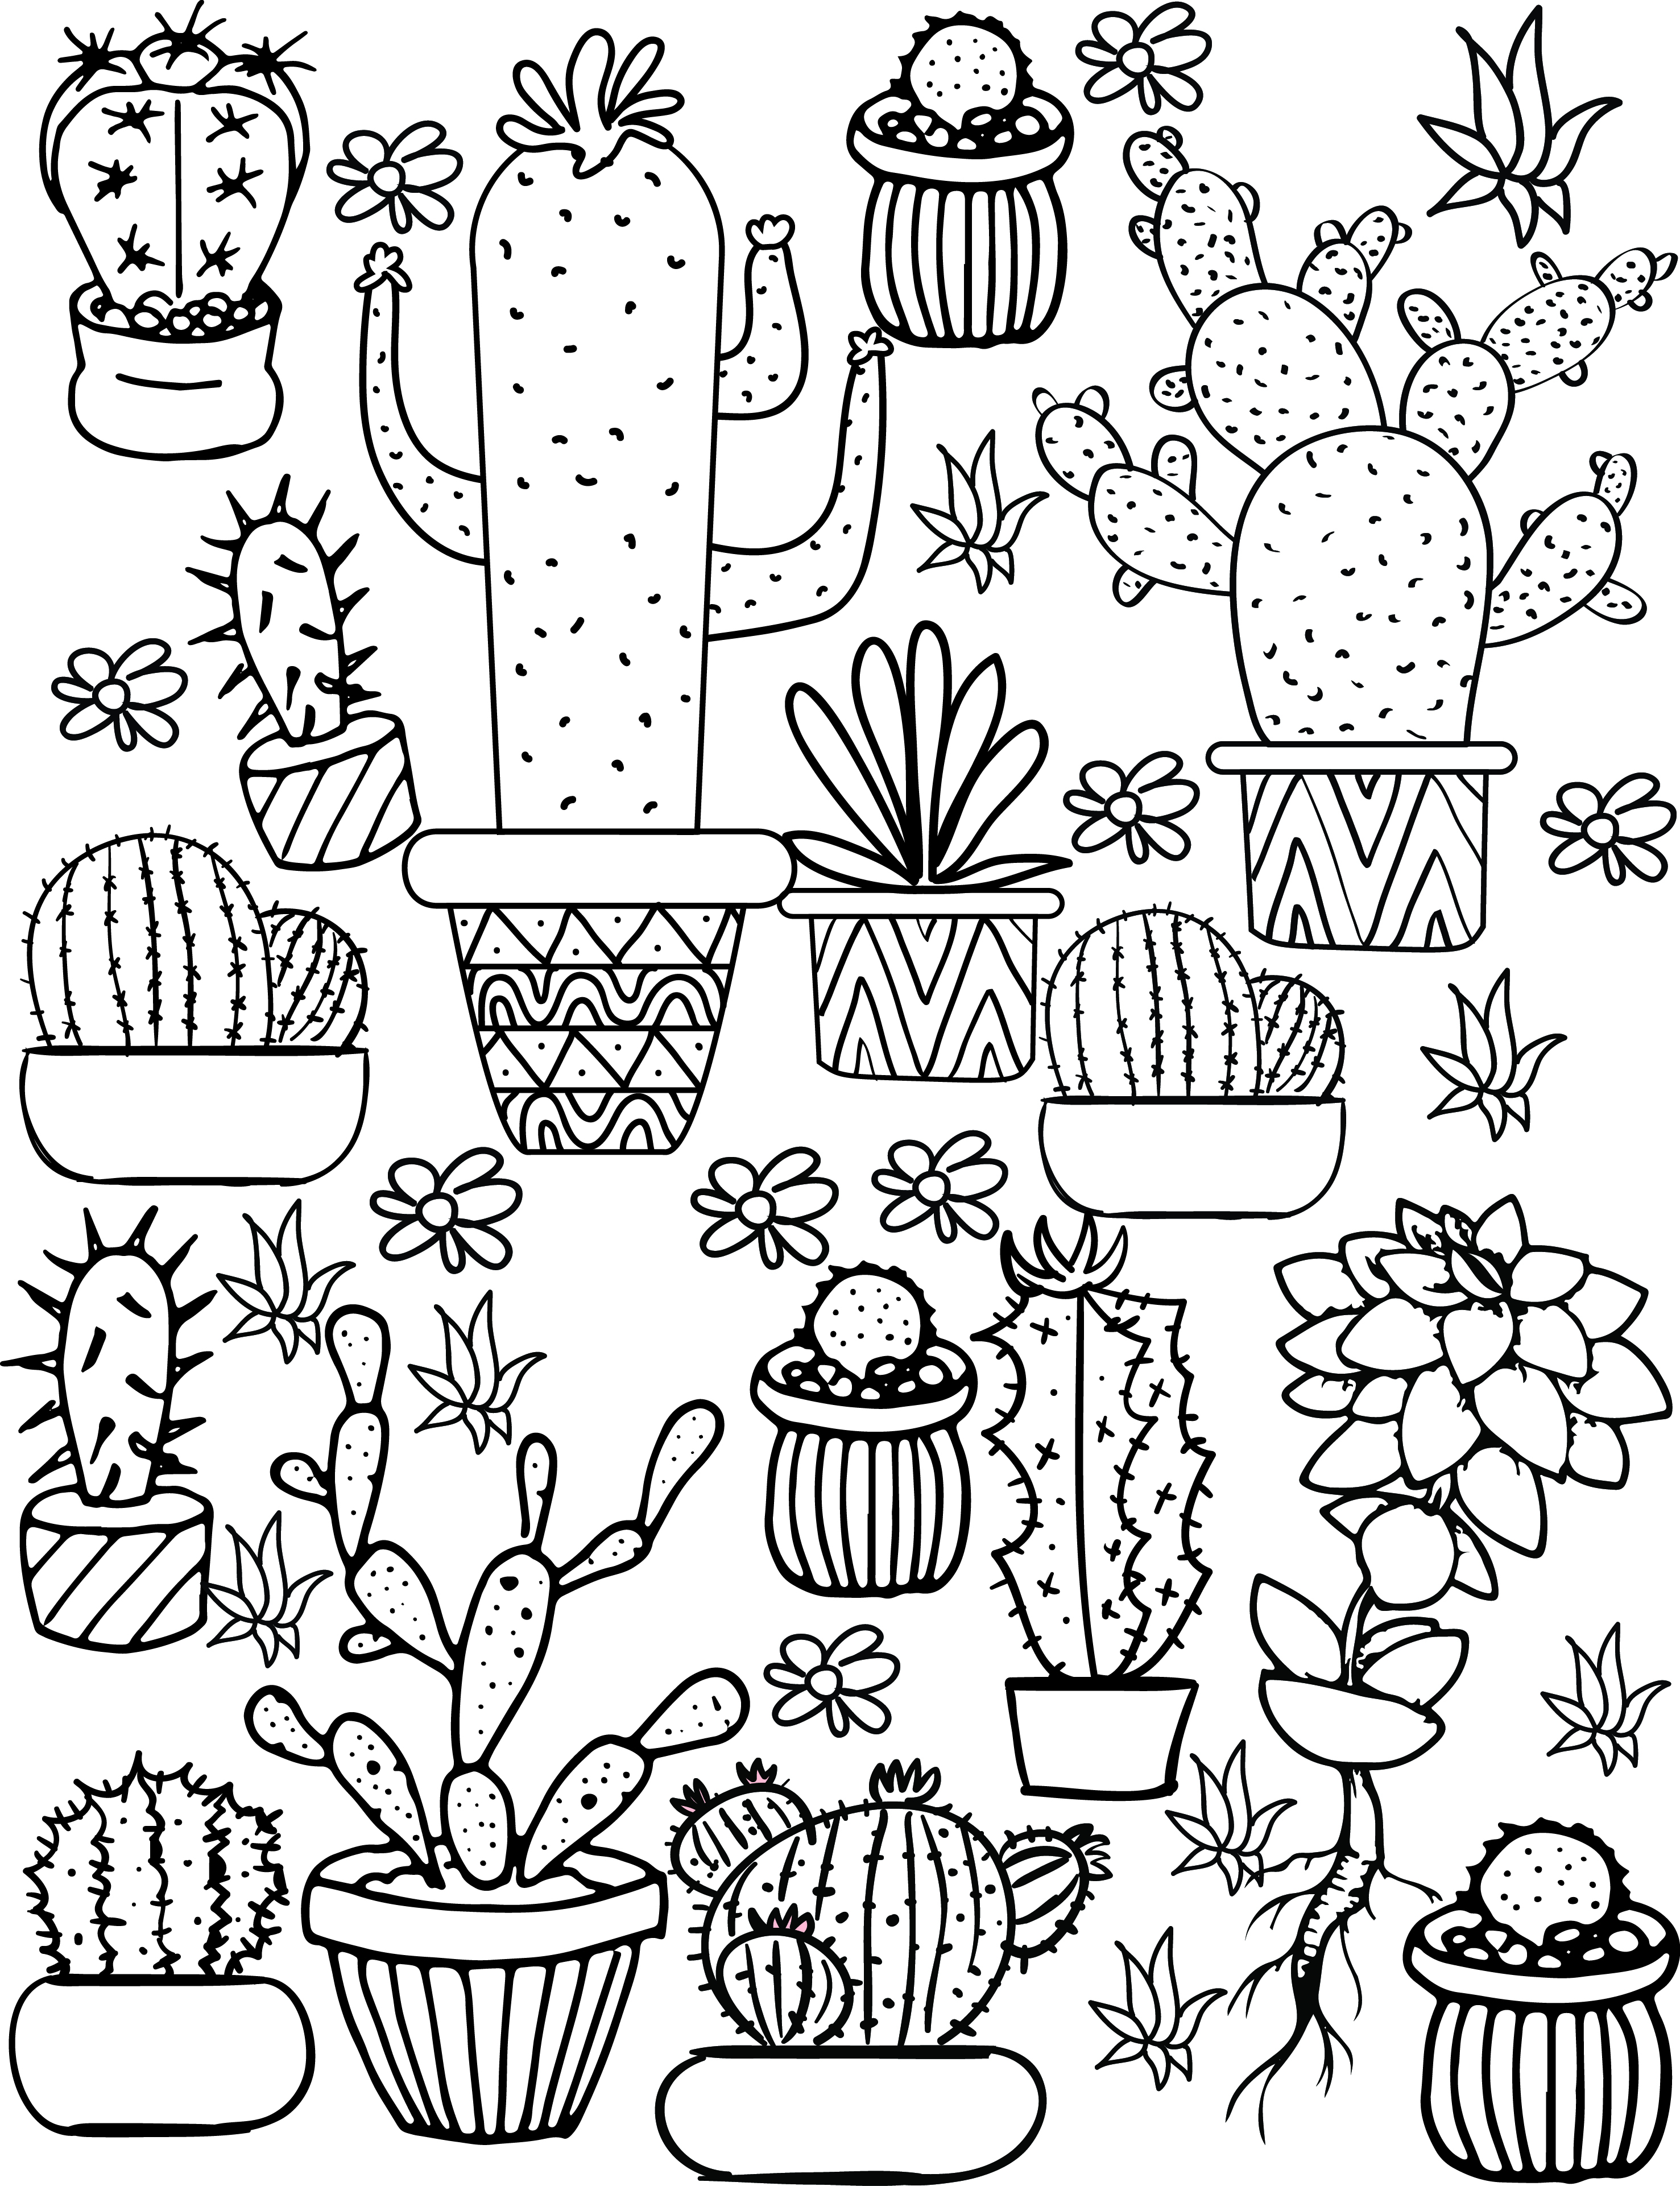 Adult Coloring Pages Cactus And Succulent Printable Adult Coloring Pages